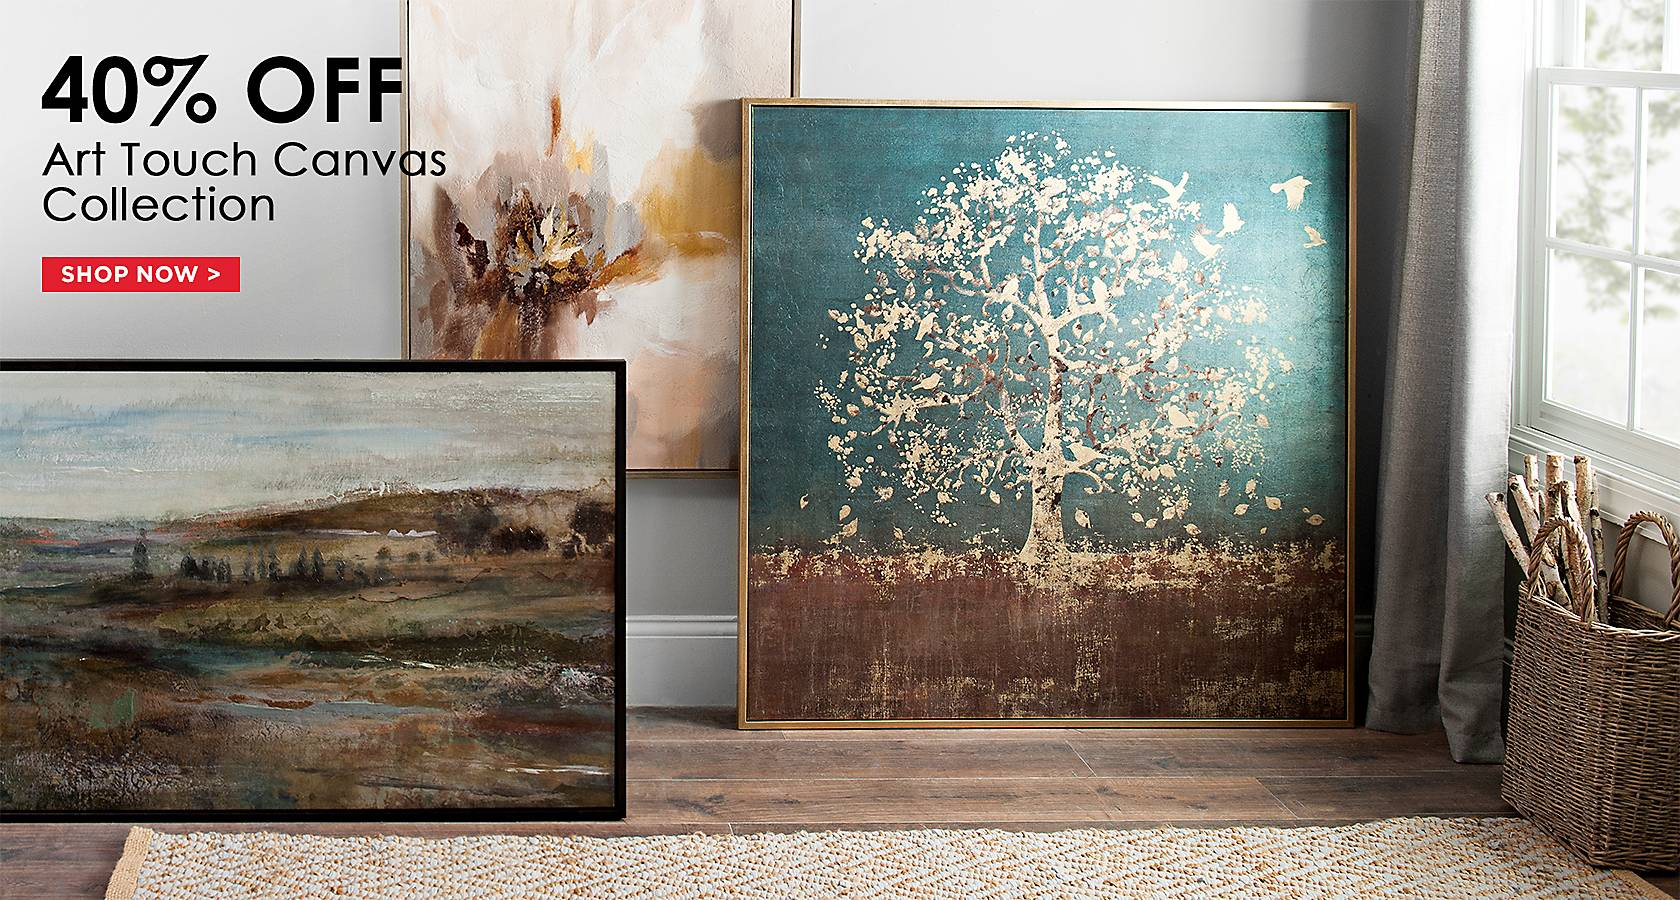 40% Off Art Touch Canvas Collection - Shop Now